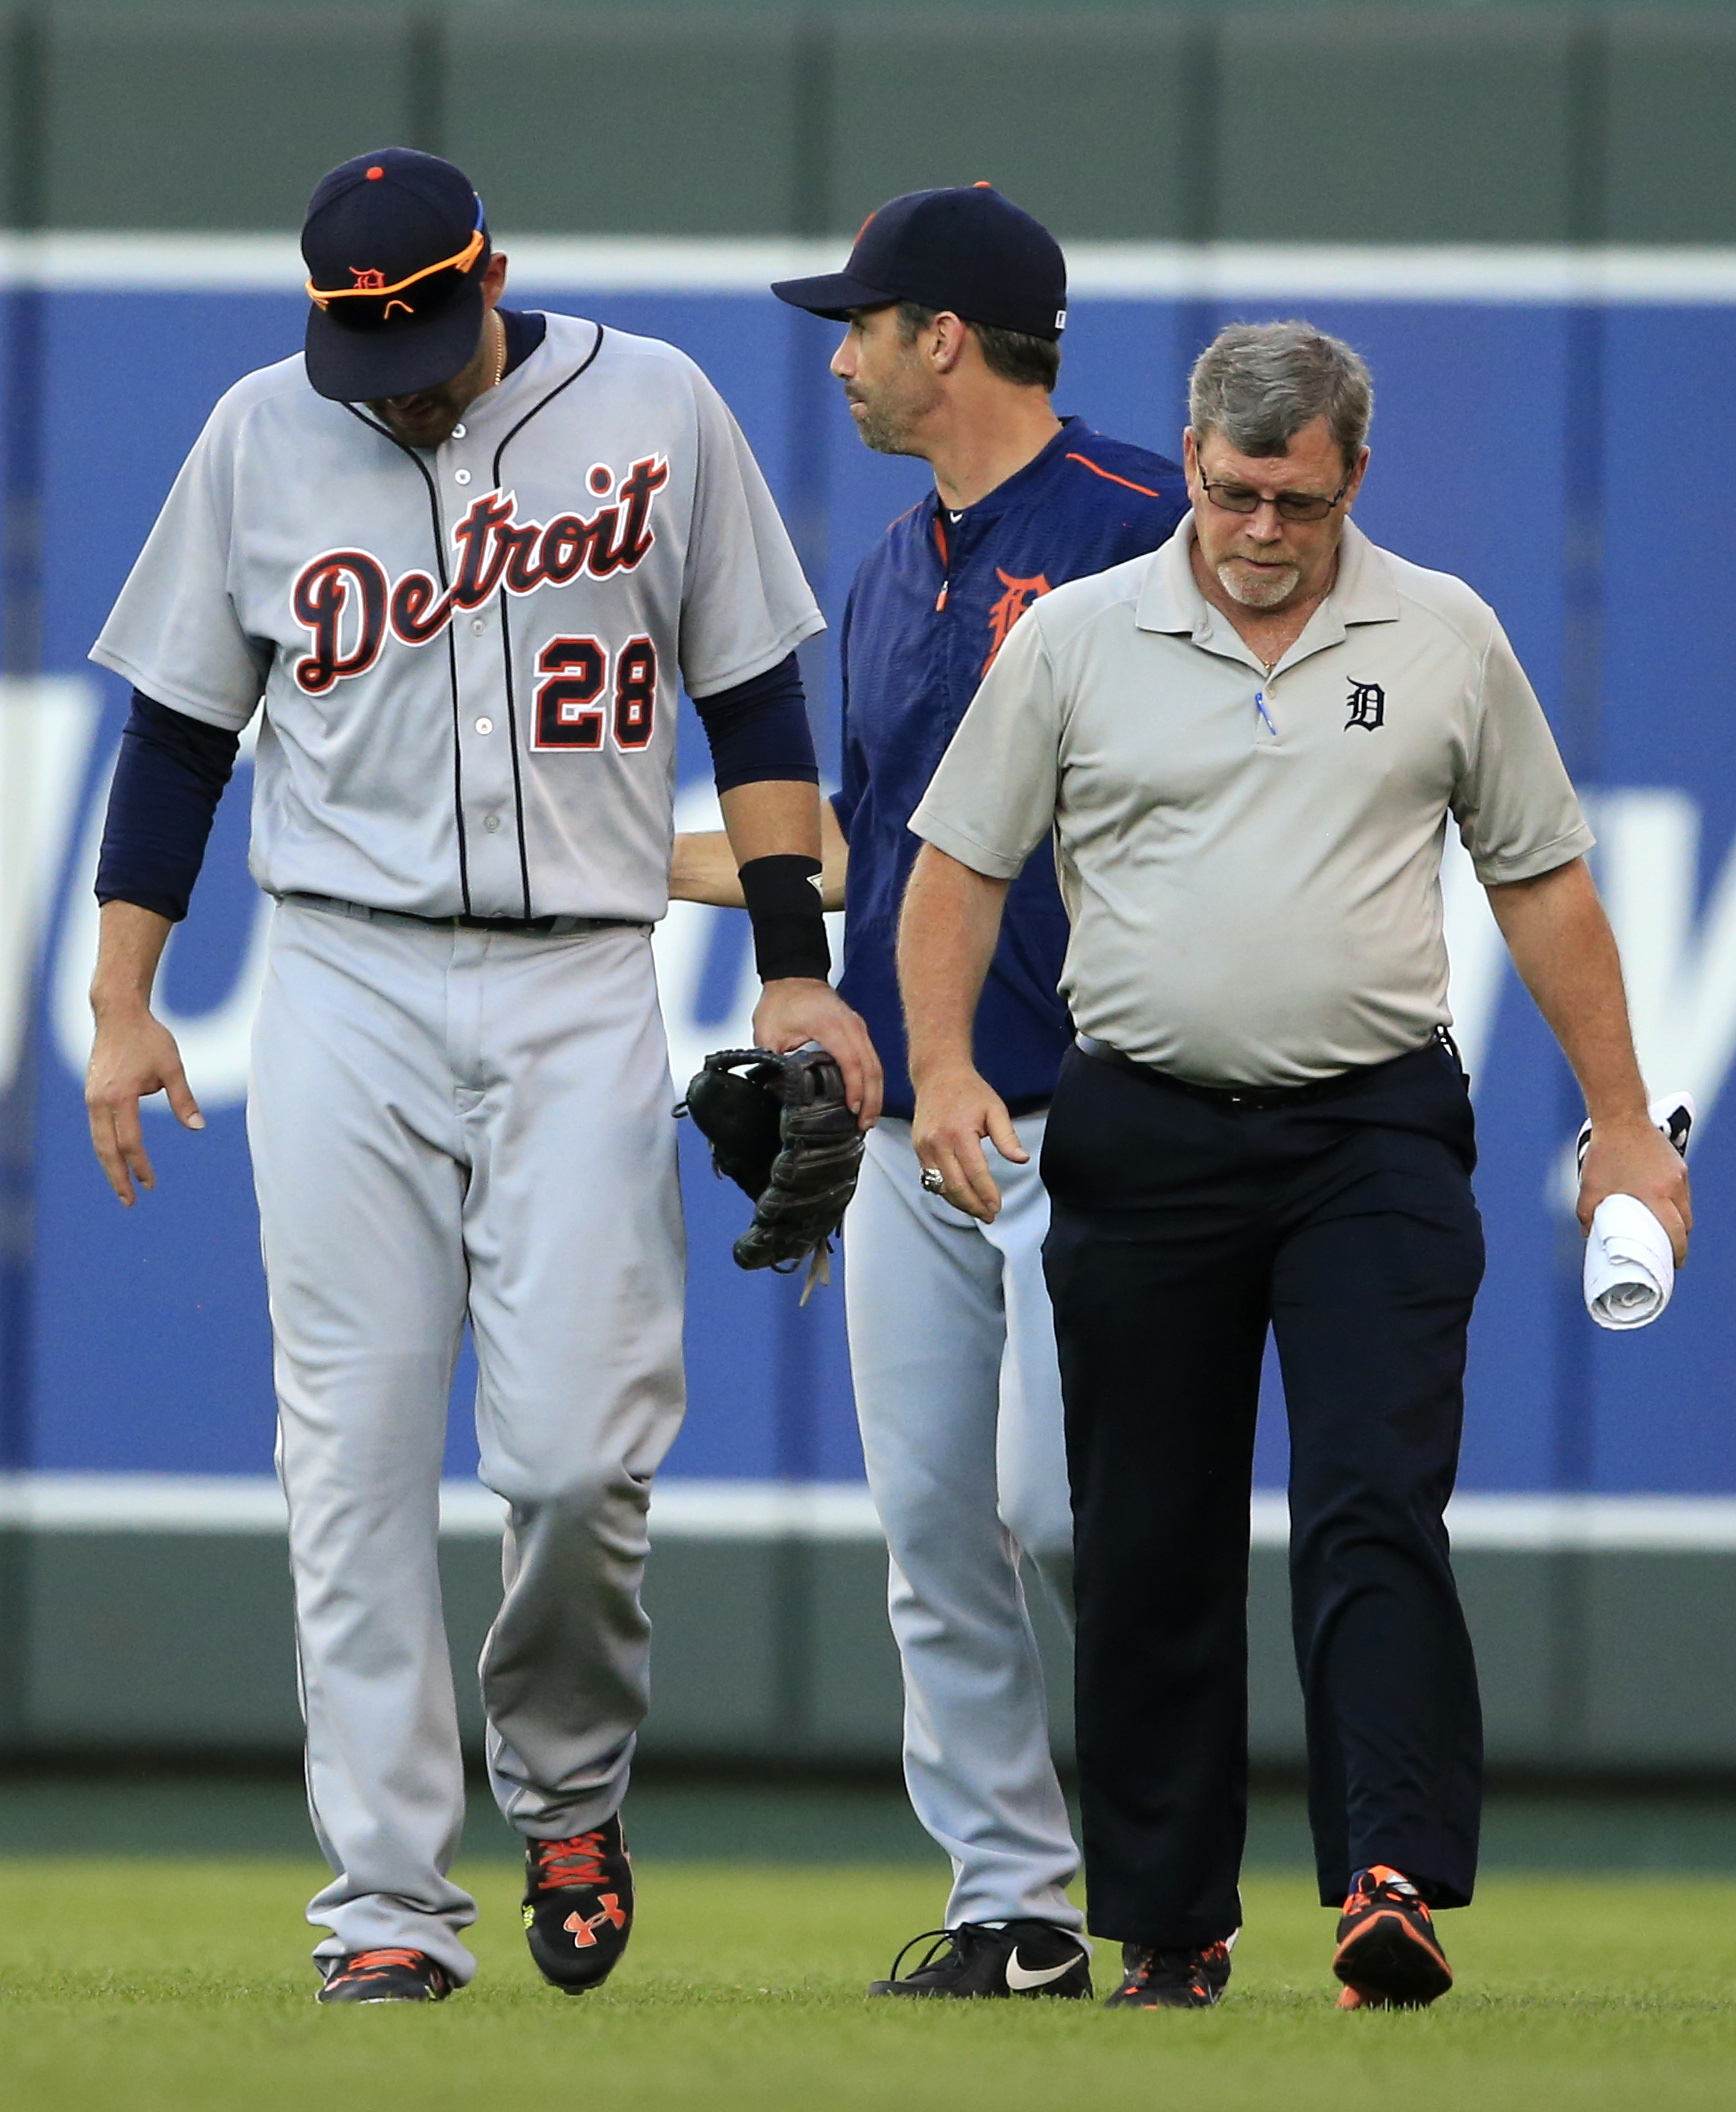 Injured Detroit Tigers right fielder J.D. Martinez (28) leaves the baseball game against the Kansas City Royals during the second inning at Kauffman Stadium in Kansas City, Mo., Thursday, June 16, 2016. (AP Photo/Orlin Wagner)